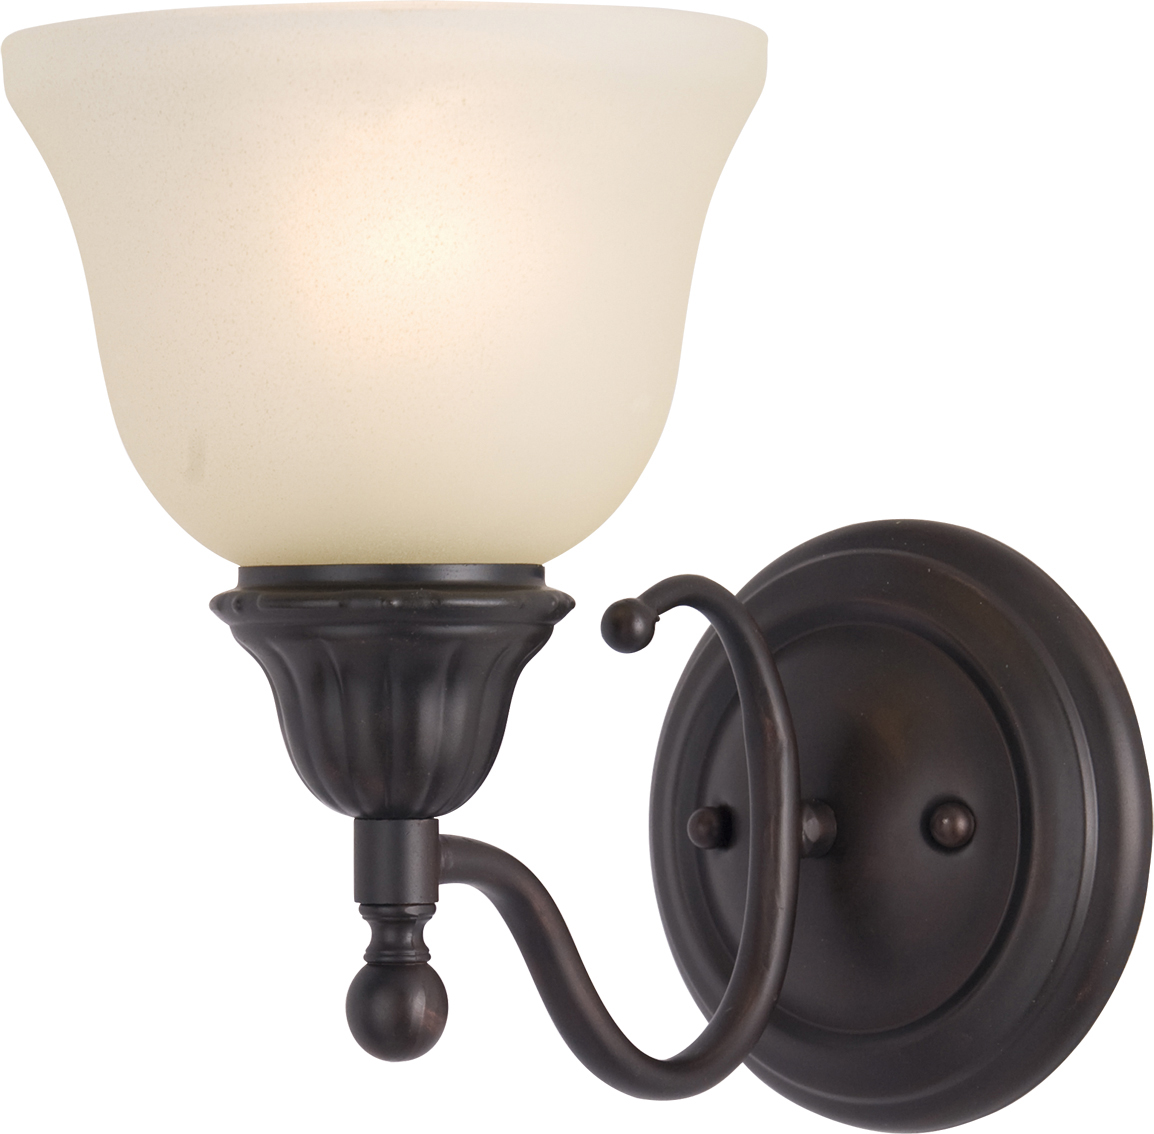 soho 1 light wall sconce wall sconce maxim lighting. Black Bedroom Furniture Sets. Home Design Ideas